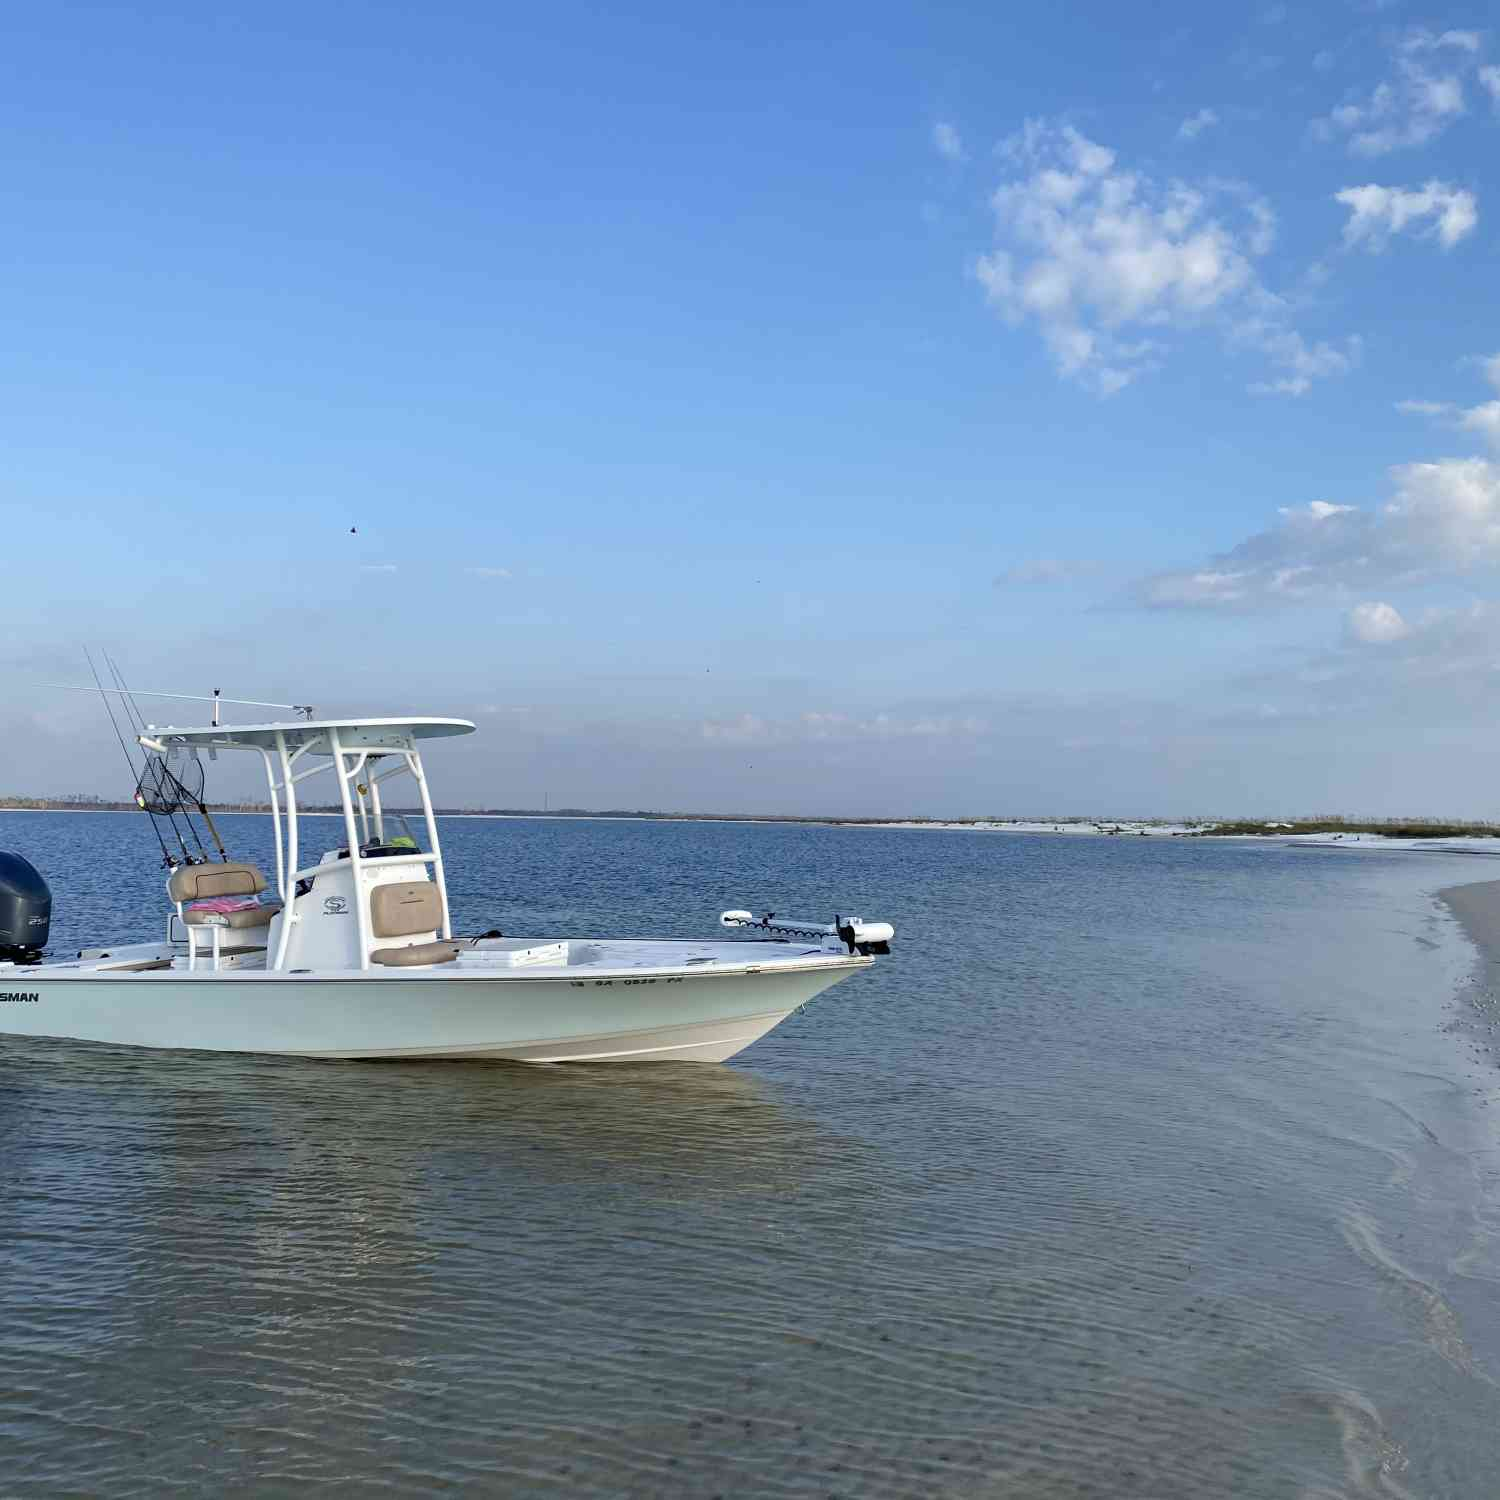 Title: Favorite Places - On board their Sportsman Tournament 234 Bay Boat - Location: Crooked Island, Panama City Fl.. Participating in the Photo Contest #SportsmanOctober2020